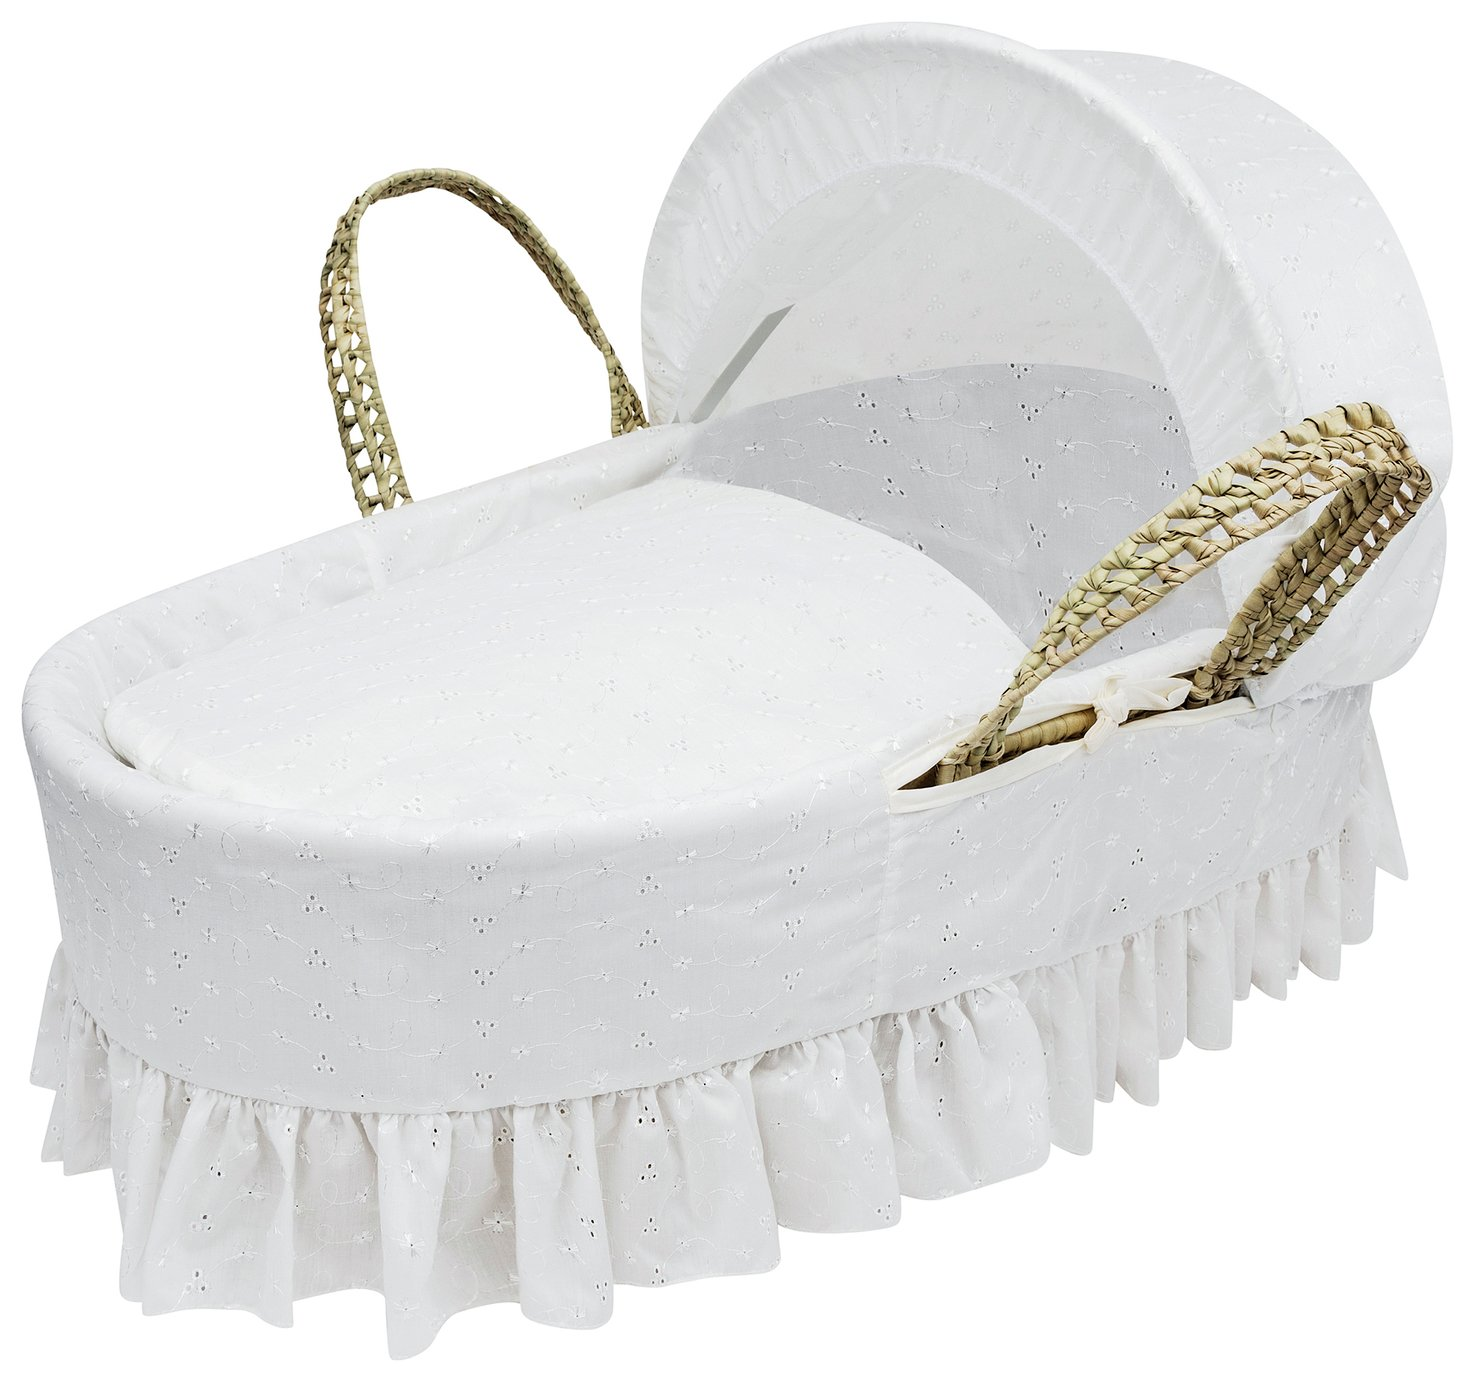 Kinder Valley White Broderie Anglaise Moses Basket